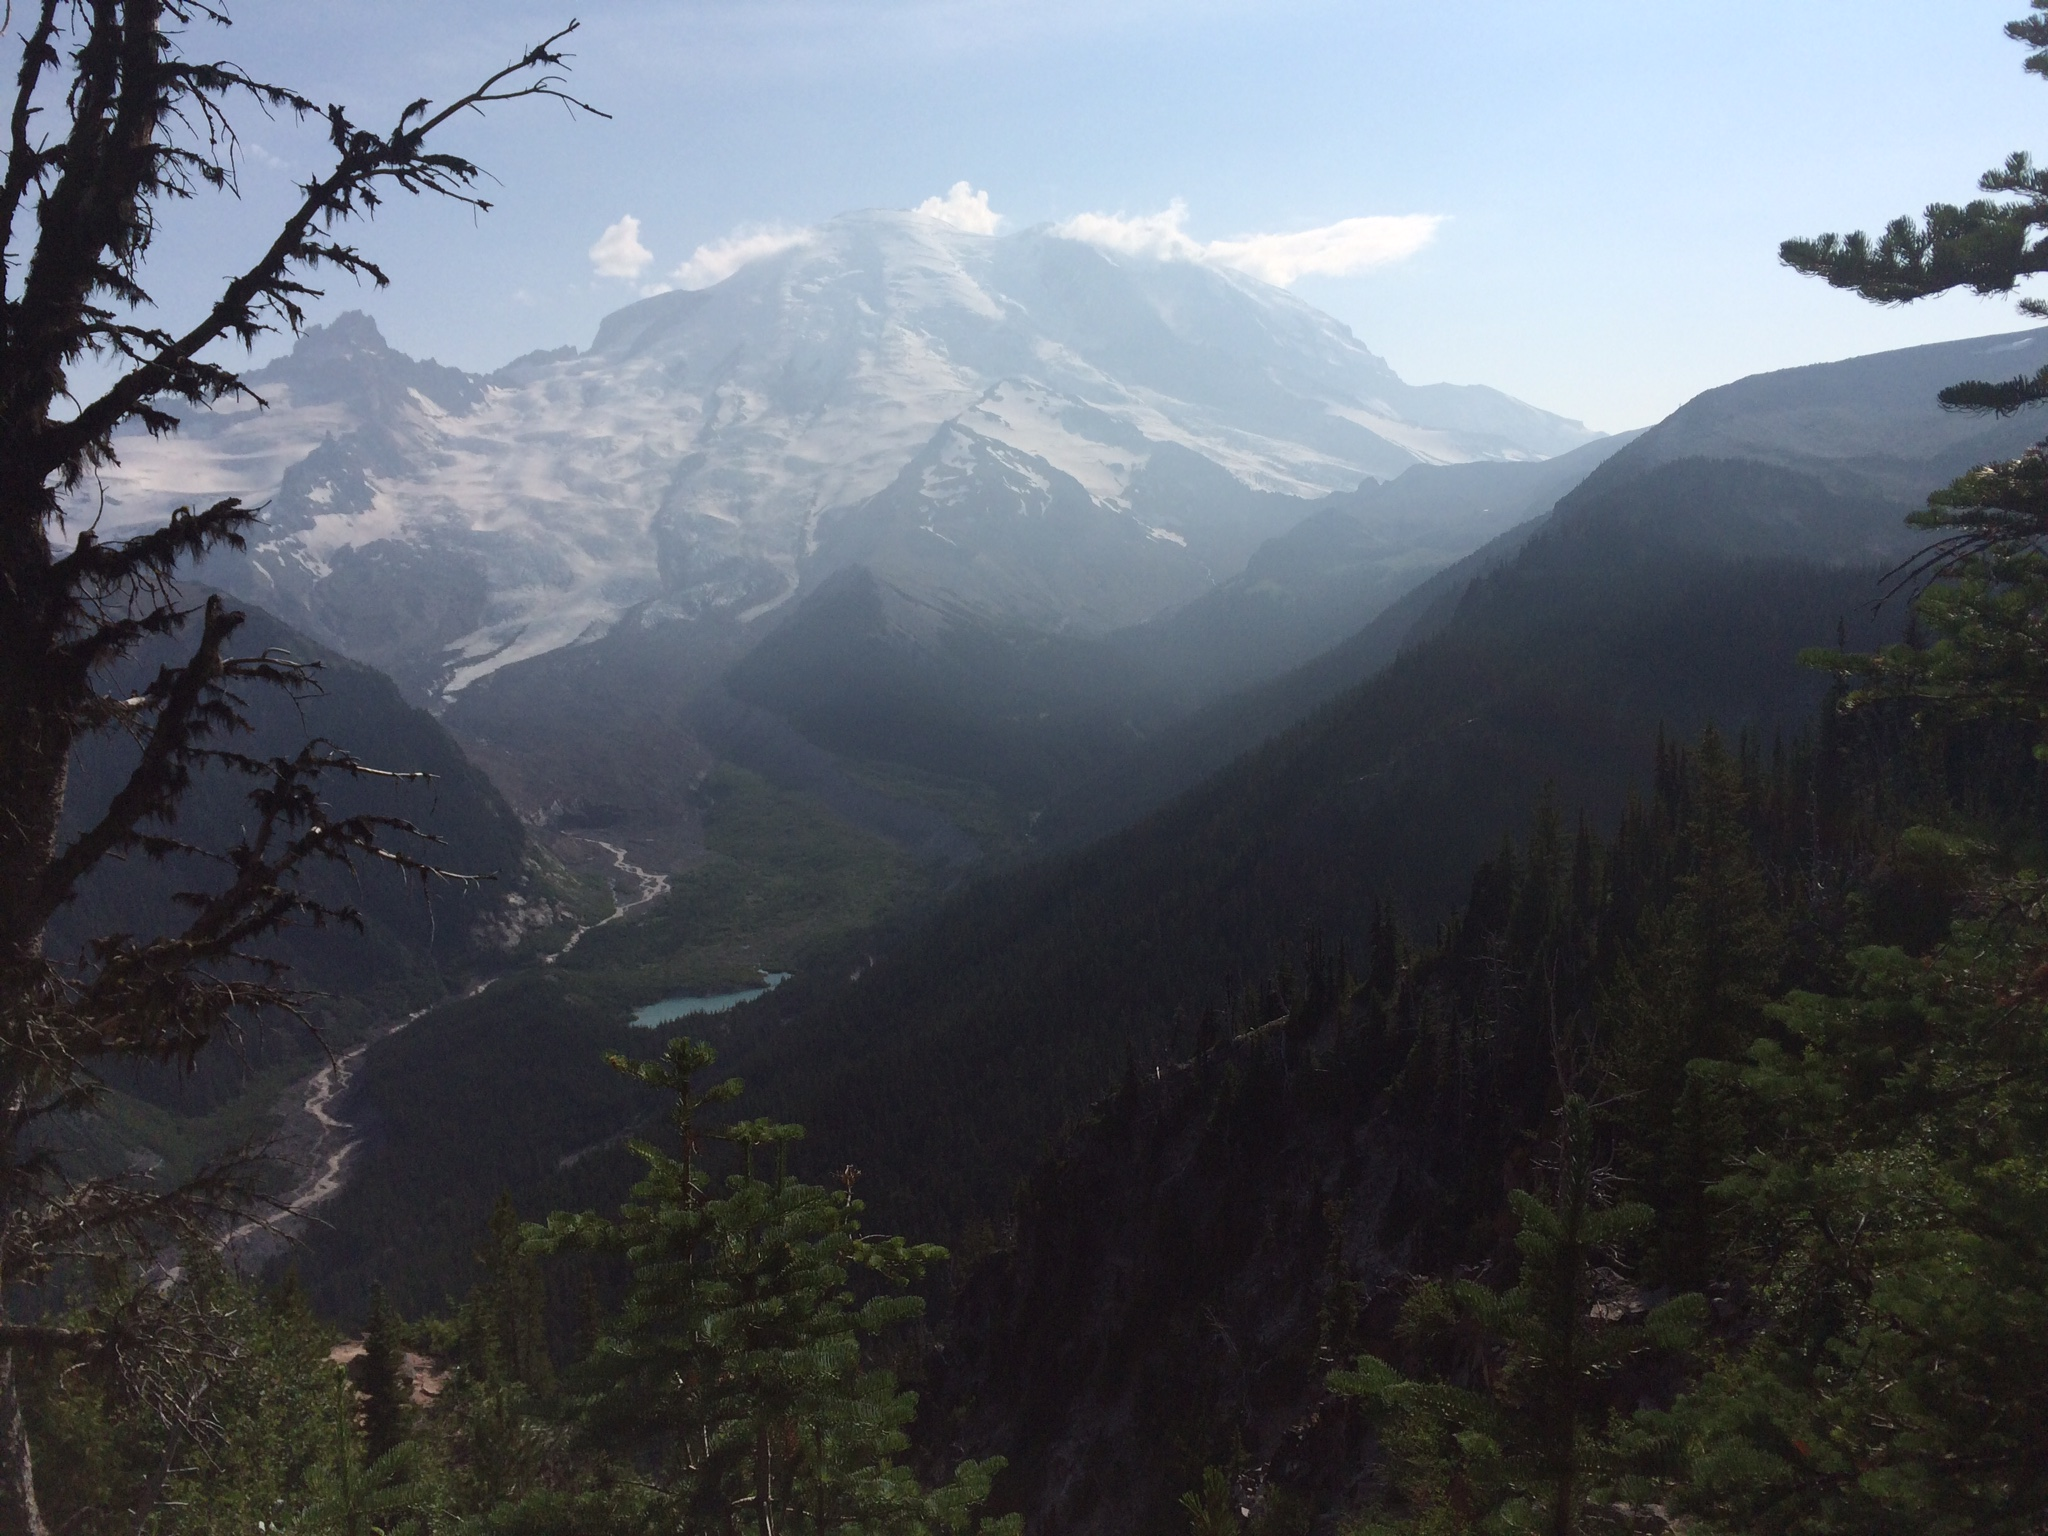 Mount Rainier and Little Tahoma to the left